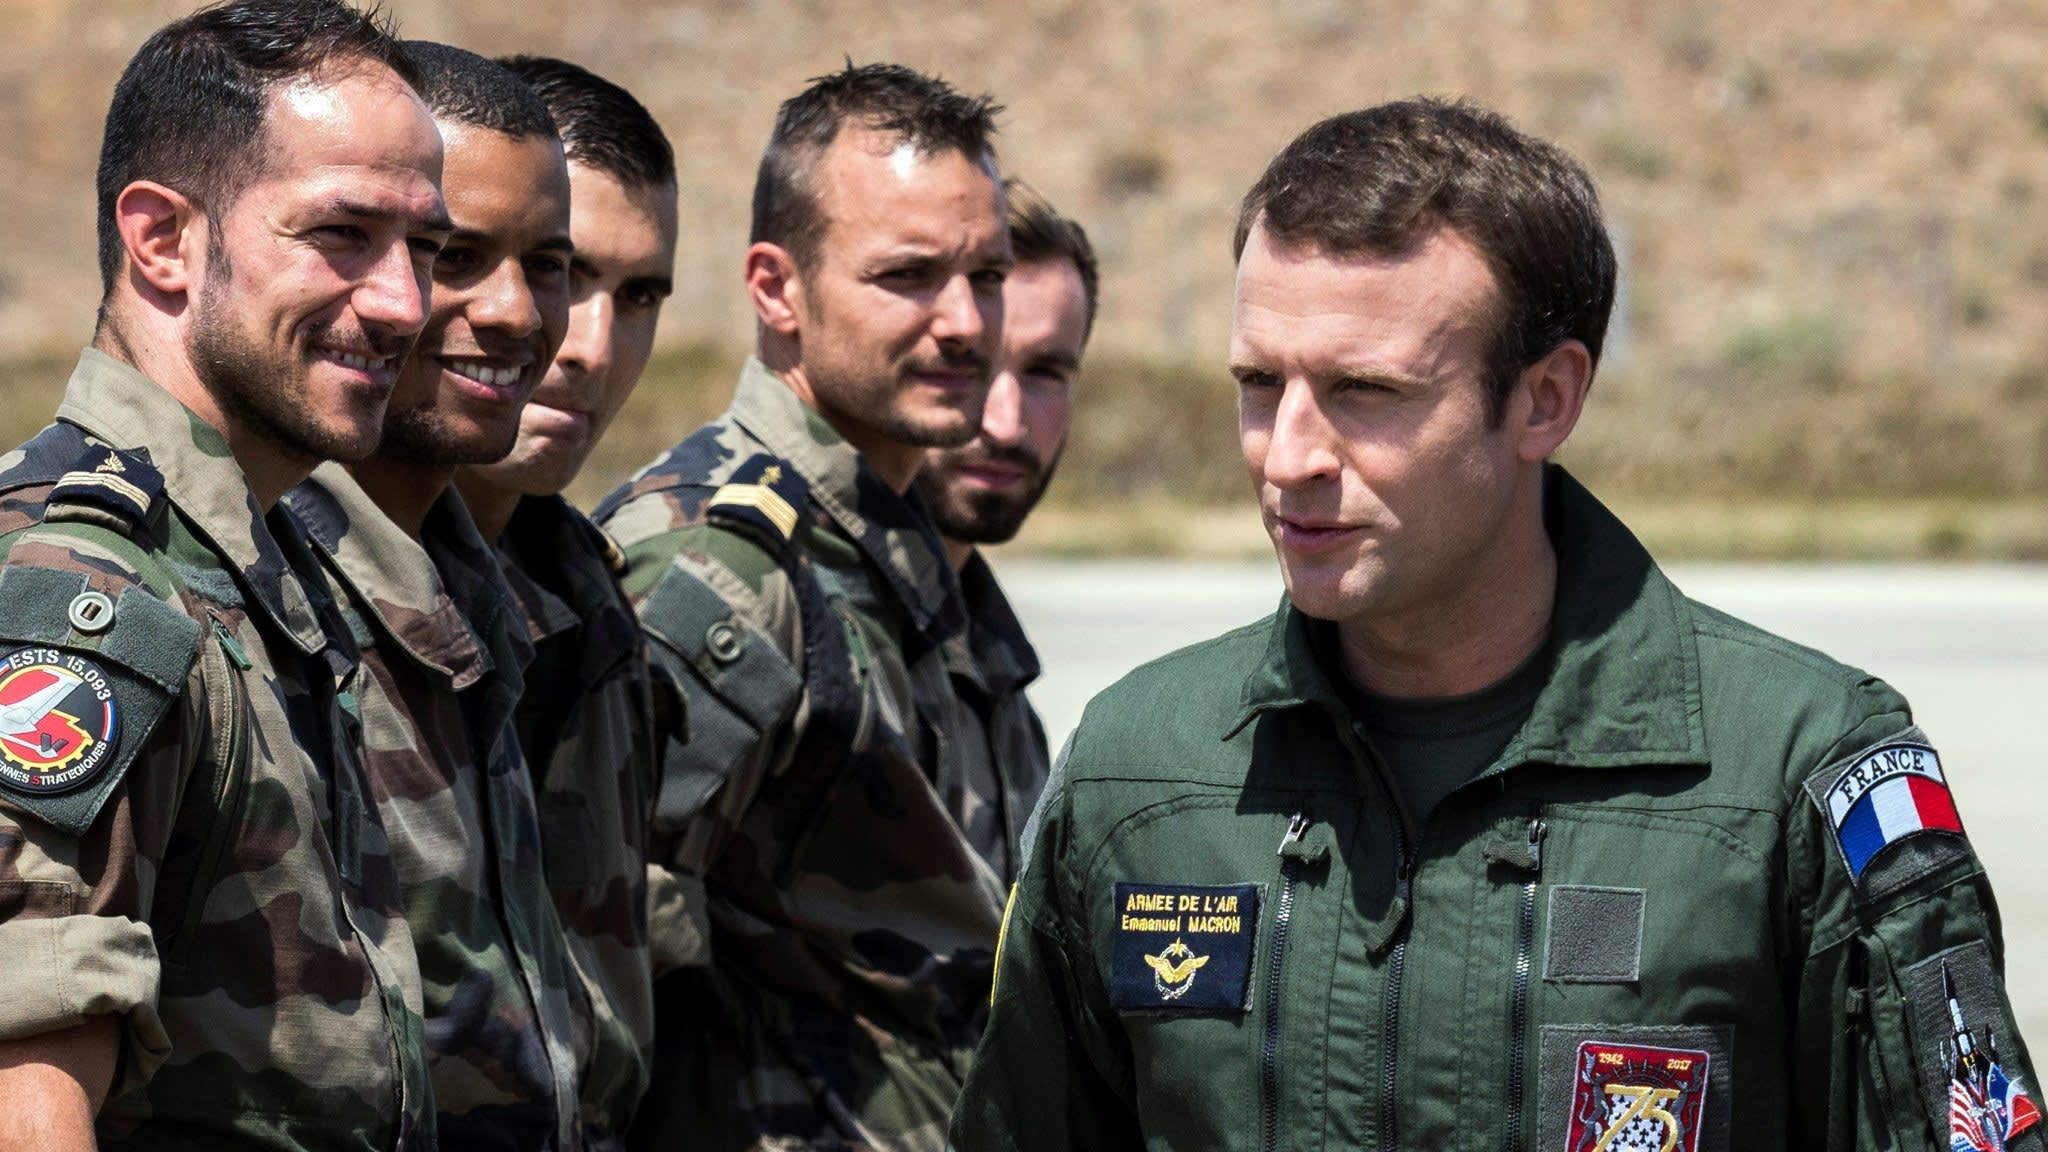 France's Emmanuel Macron to advance closer defence ties with UK   Financial Times